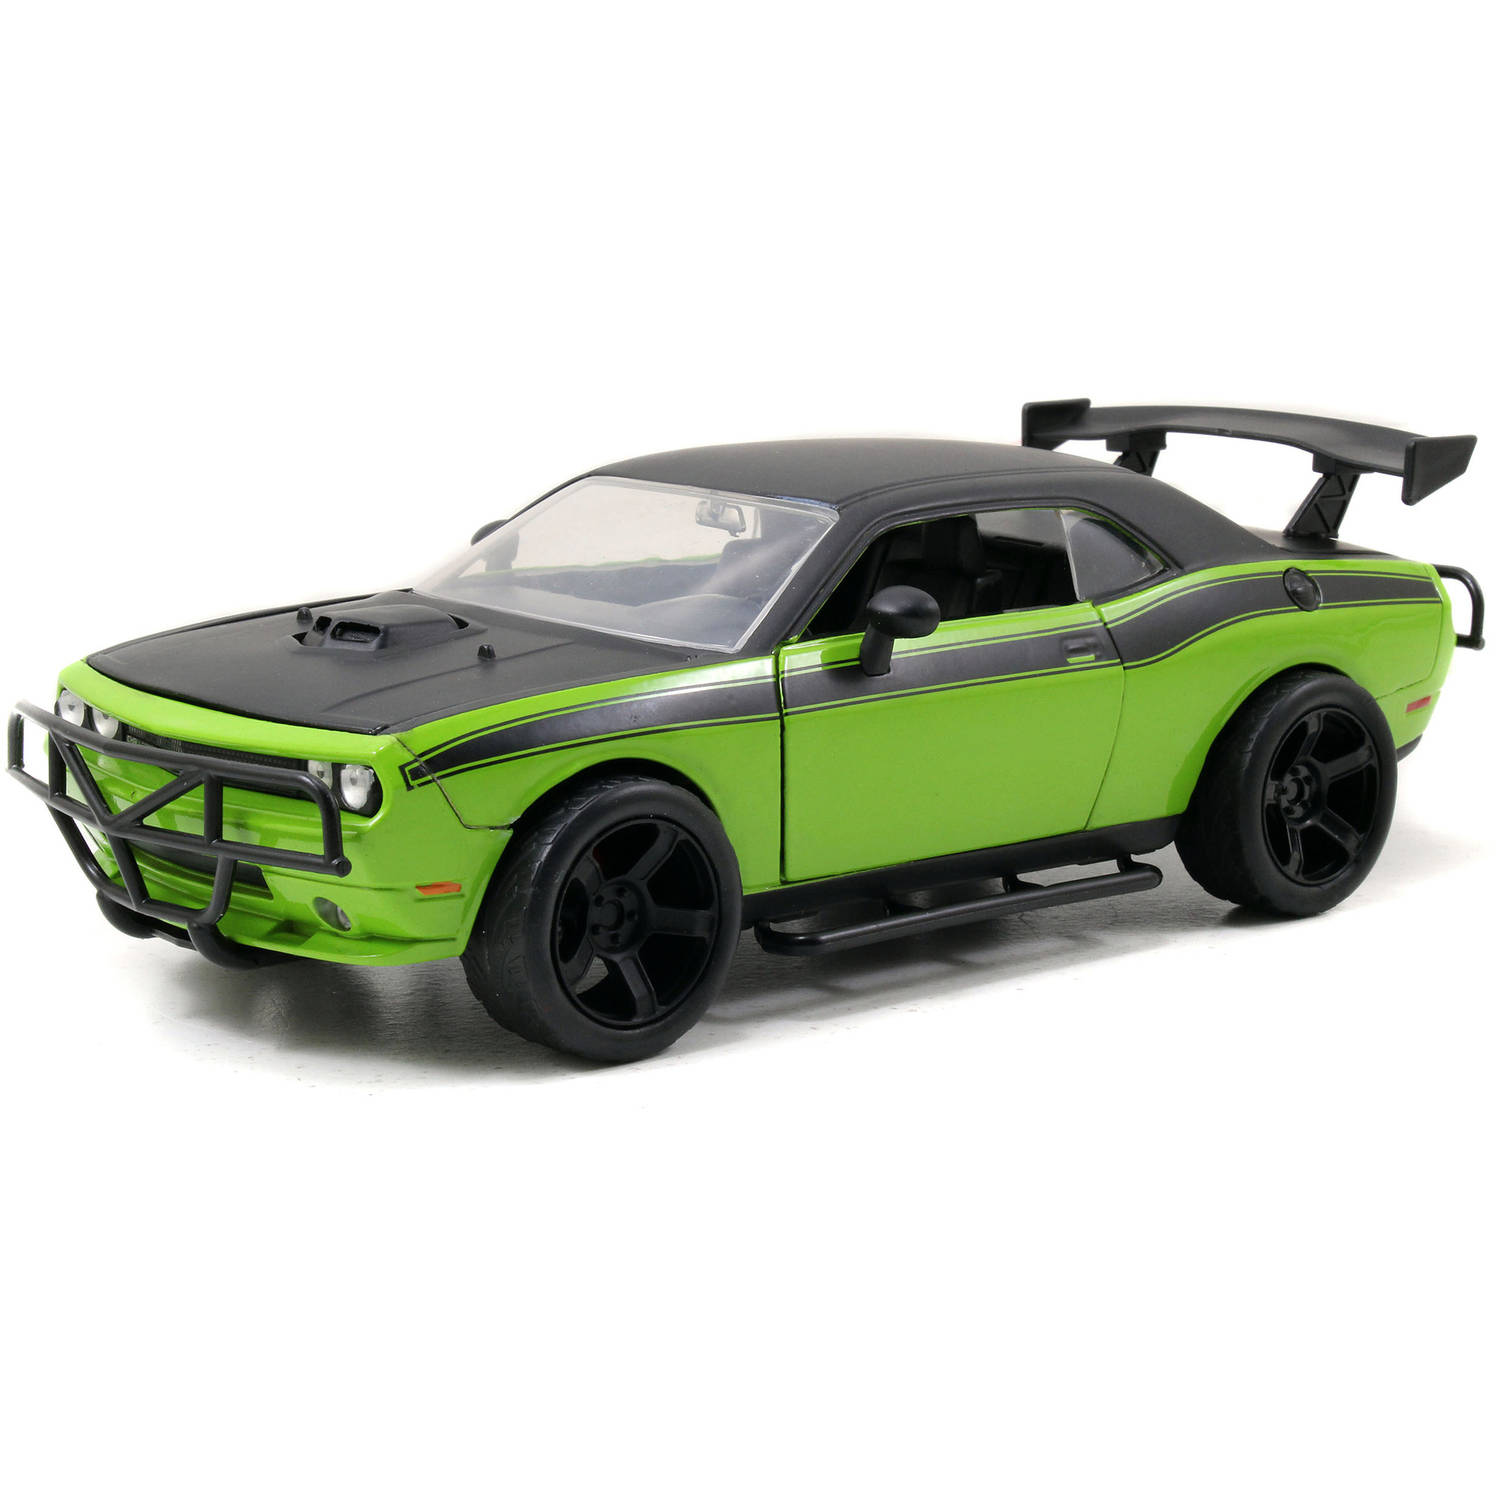 Jada Toys Fast and Furious 1/24 Scale Die Cast Dodge Challenger